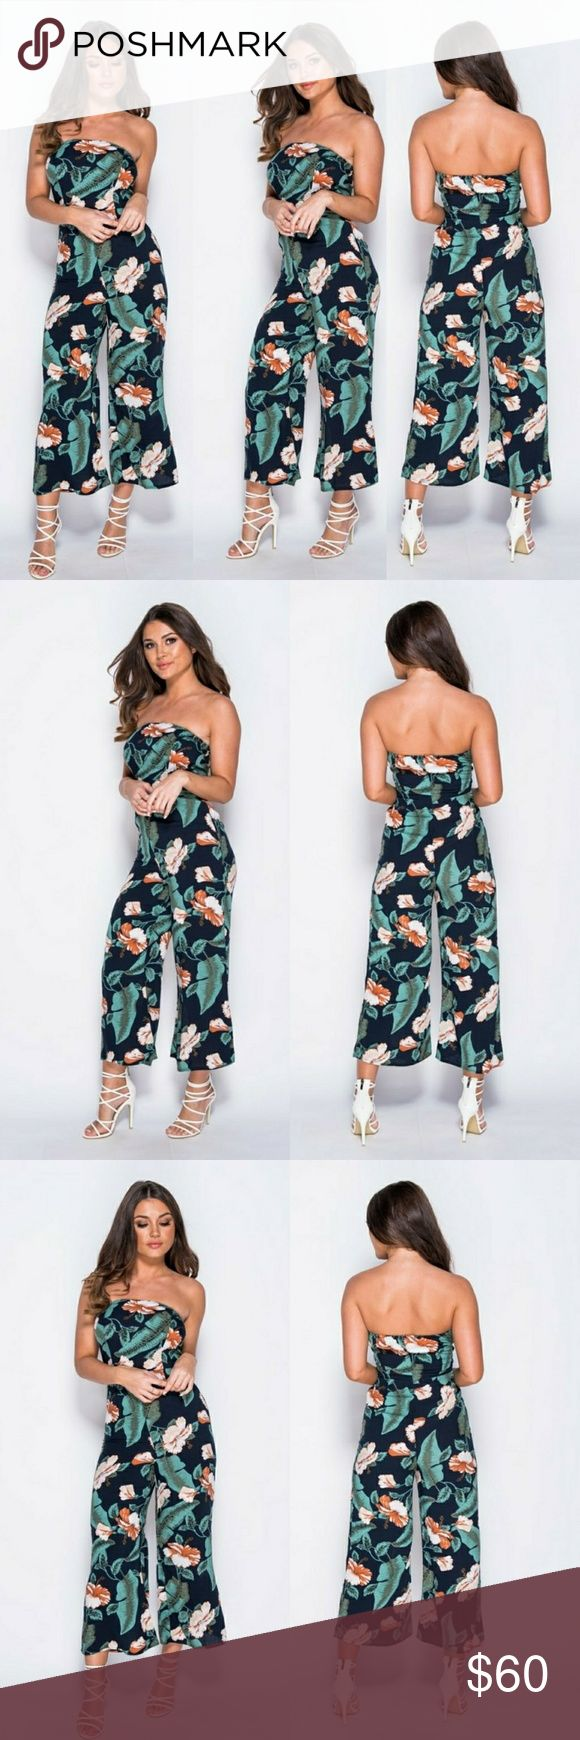 Floral print strapless jumpsuit Floral print strapless jumpsuit Wide leg flared trousers Cotton fabric Pants Jumpsuits & Rompers